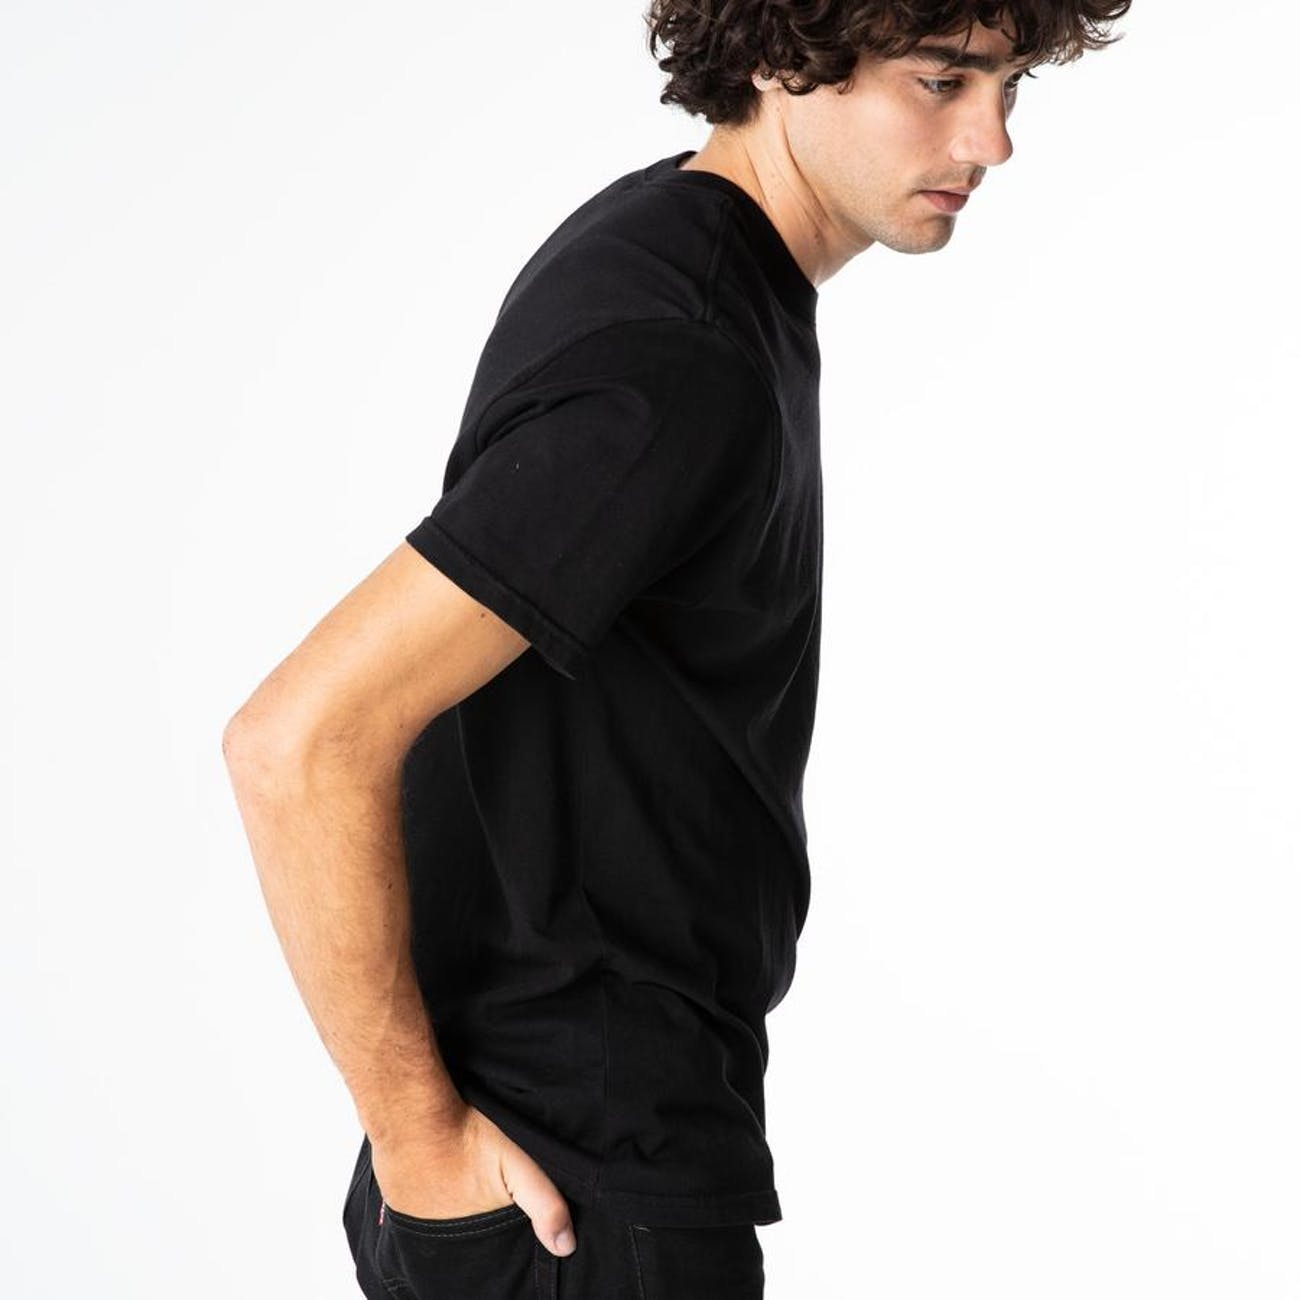 5fee841c98b590 Your Plain Black T-Shirt Has Gotten Gross. Yes, the One You're ...